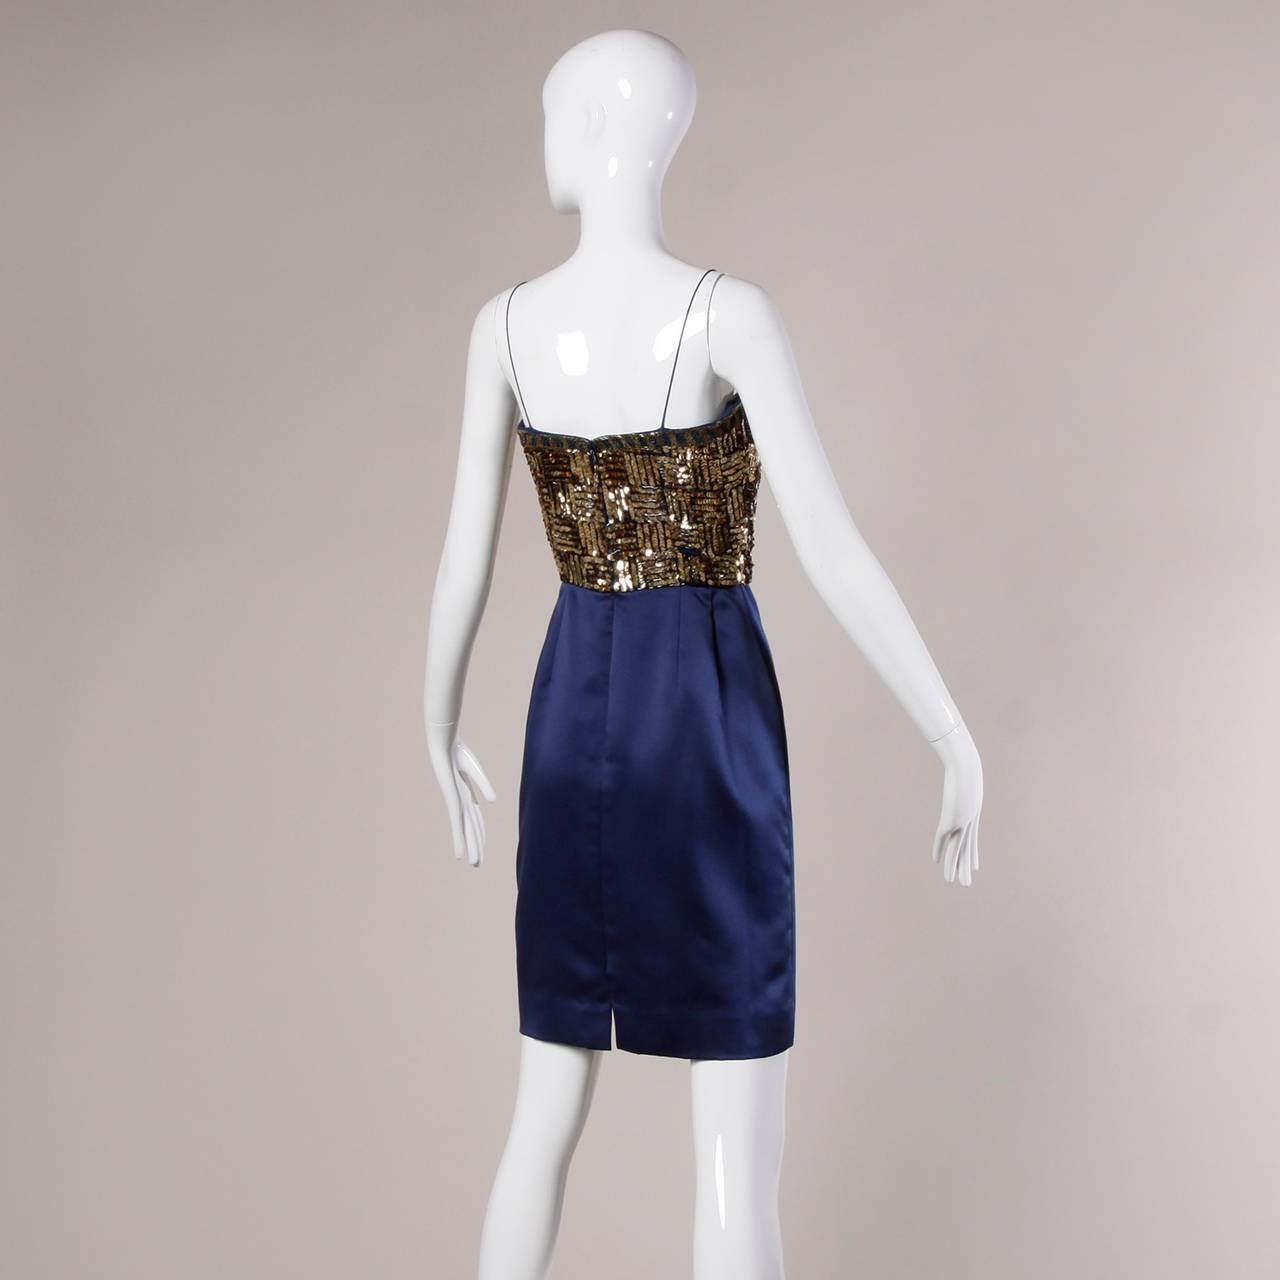 Women's Bill Blass Vintage Metallic Gold & Blue Sequin + Beaded Cocktail Dress For Sale